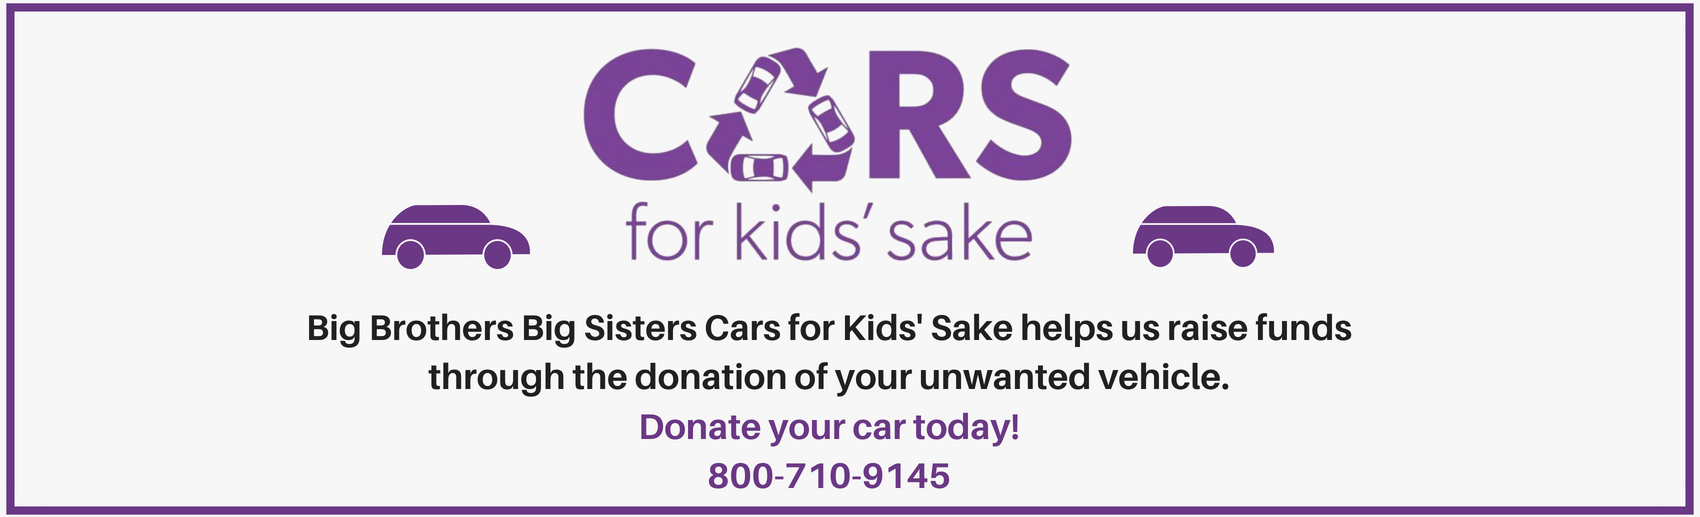 Cars for Kids' Sake (1)